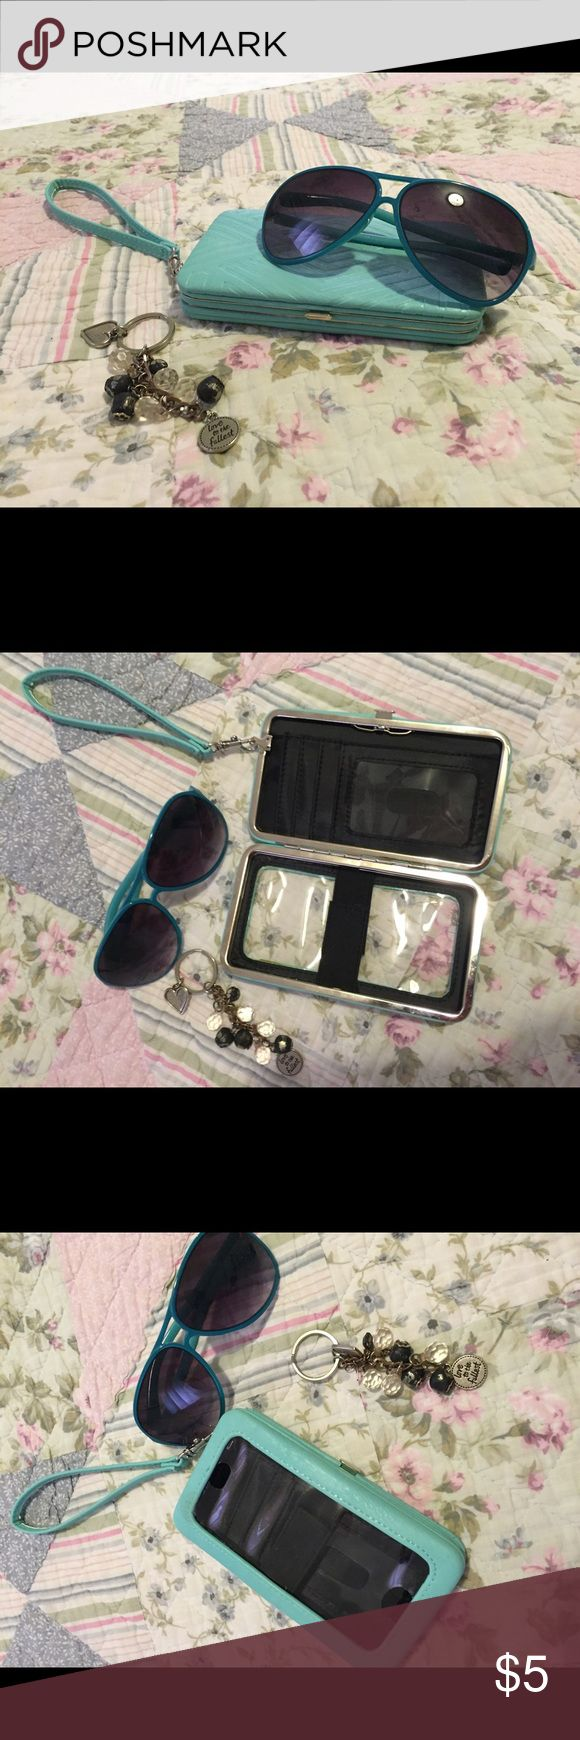 """iPhone 6 clutch with sunglasses and keychain Bundle it! iPhone 6 clutch. Holds phone and has a place for ID, cash, and cards. Also, blue sunglasses, and a keychain. Unsure of name brands on any of the items. The plastic looks """"warped"""" slightly, but it still allows you to function your phone fine. Other"""